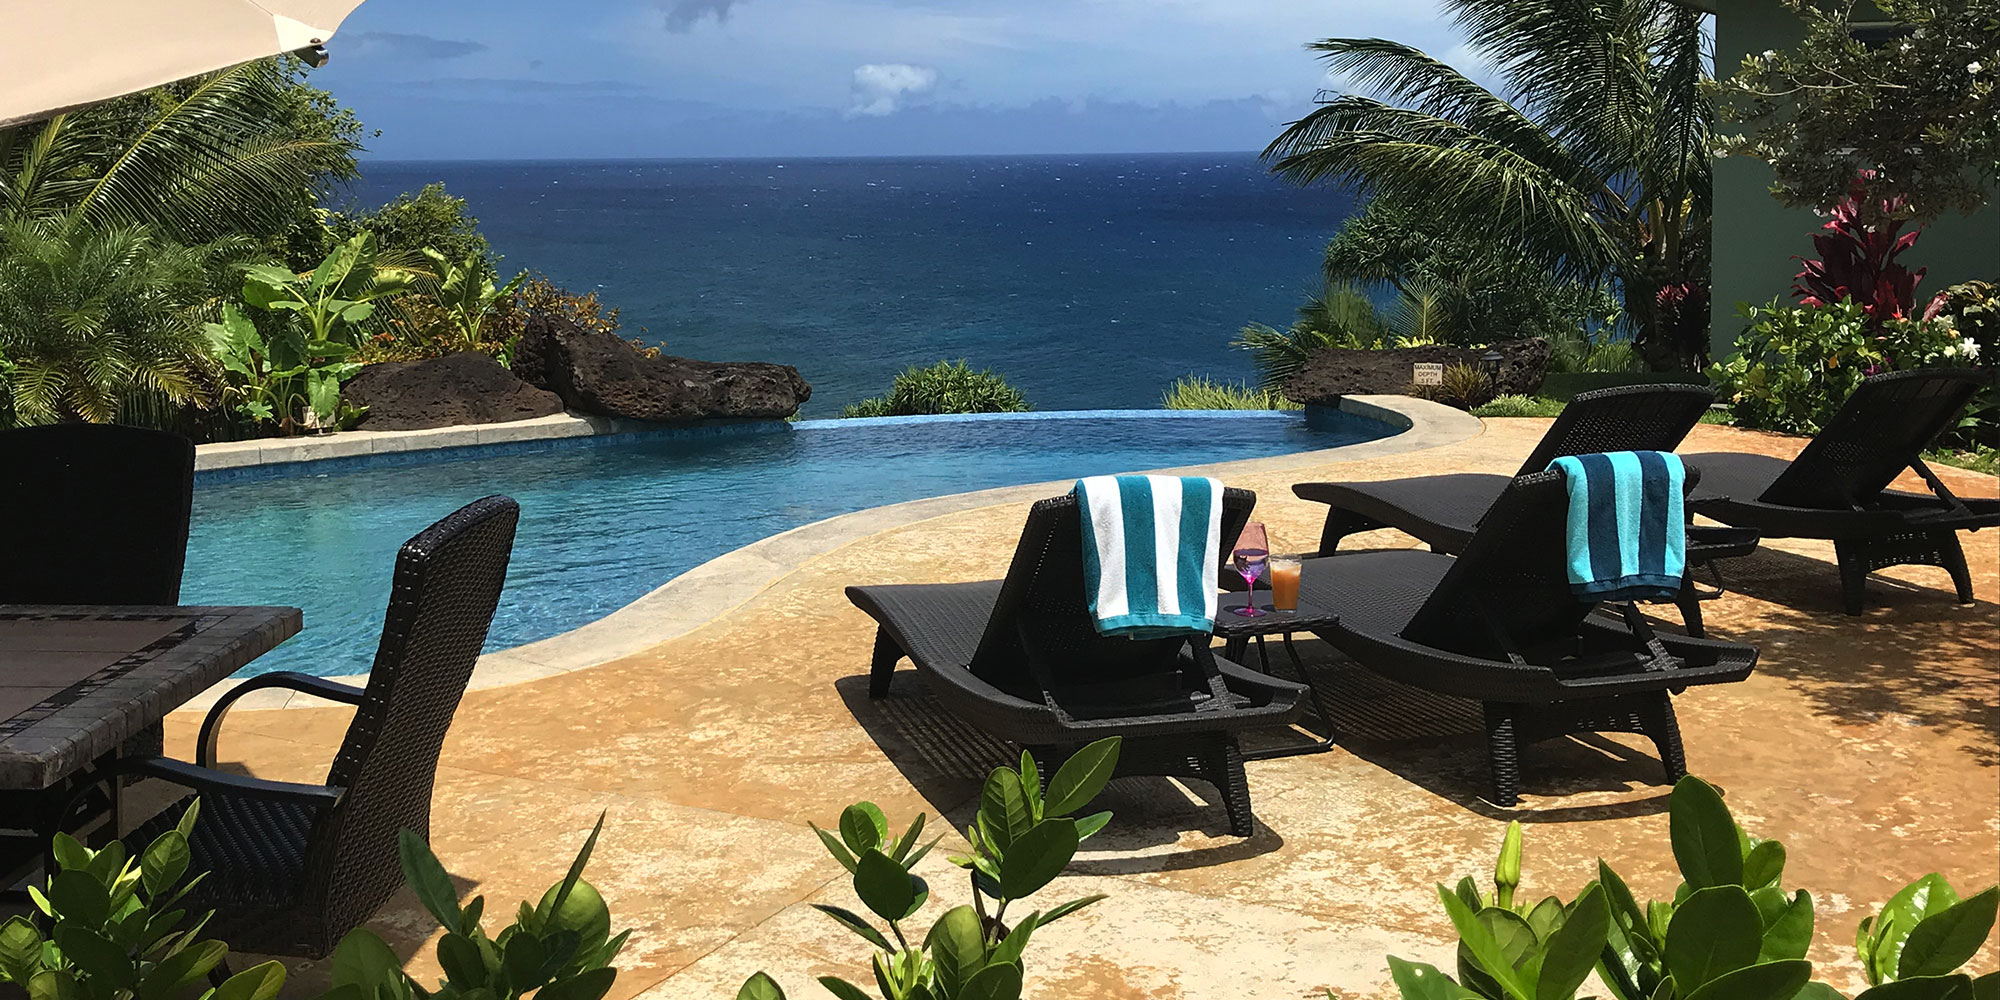 Purchasing a Maui Vacation Rental Read This Before You Buy by Maui Owner Condos